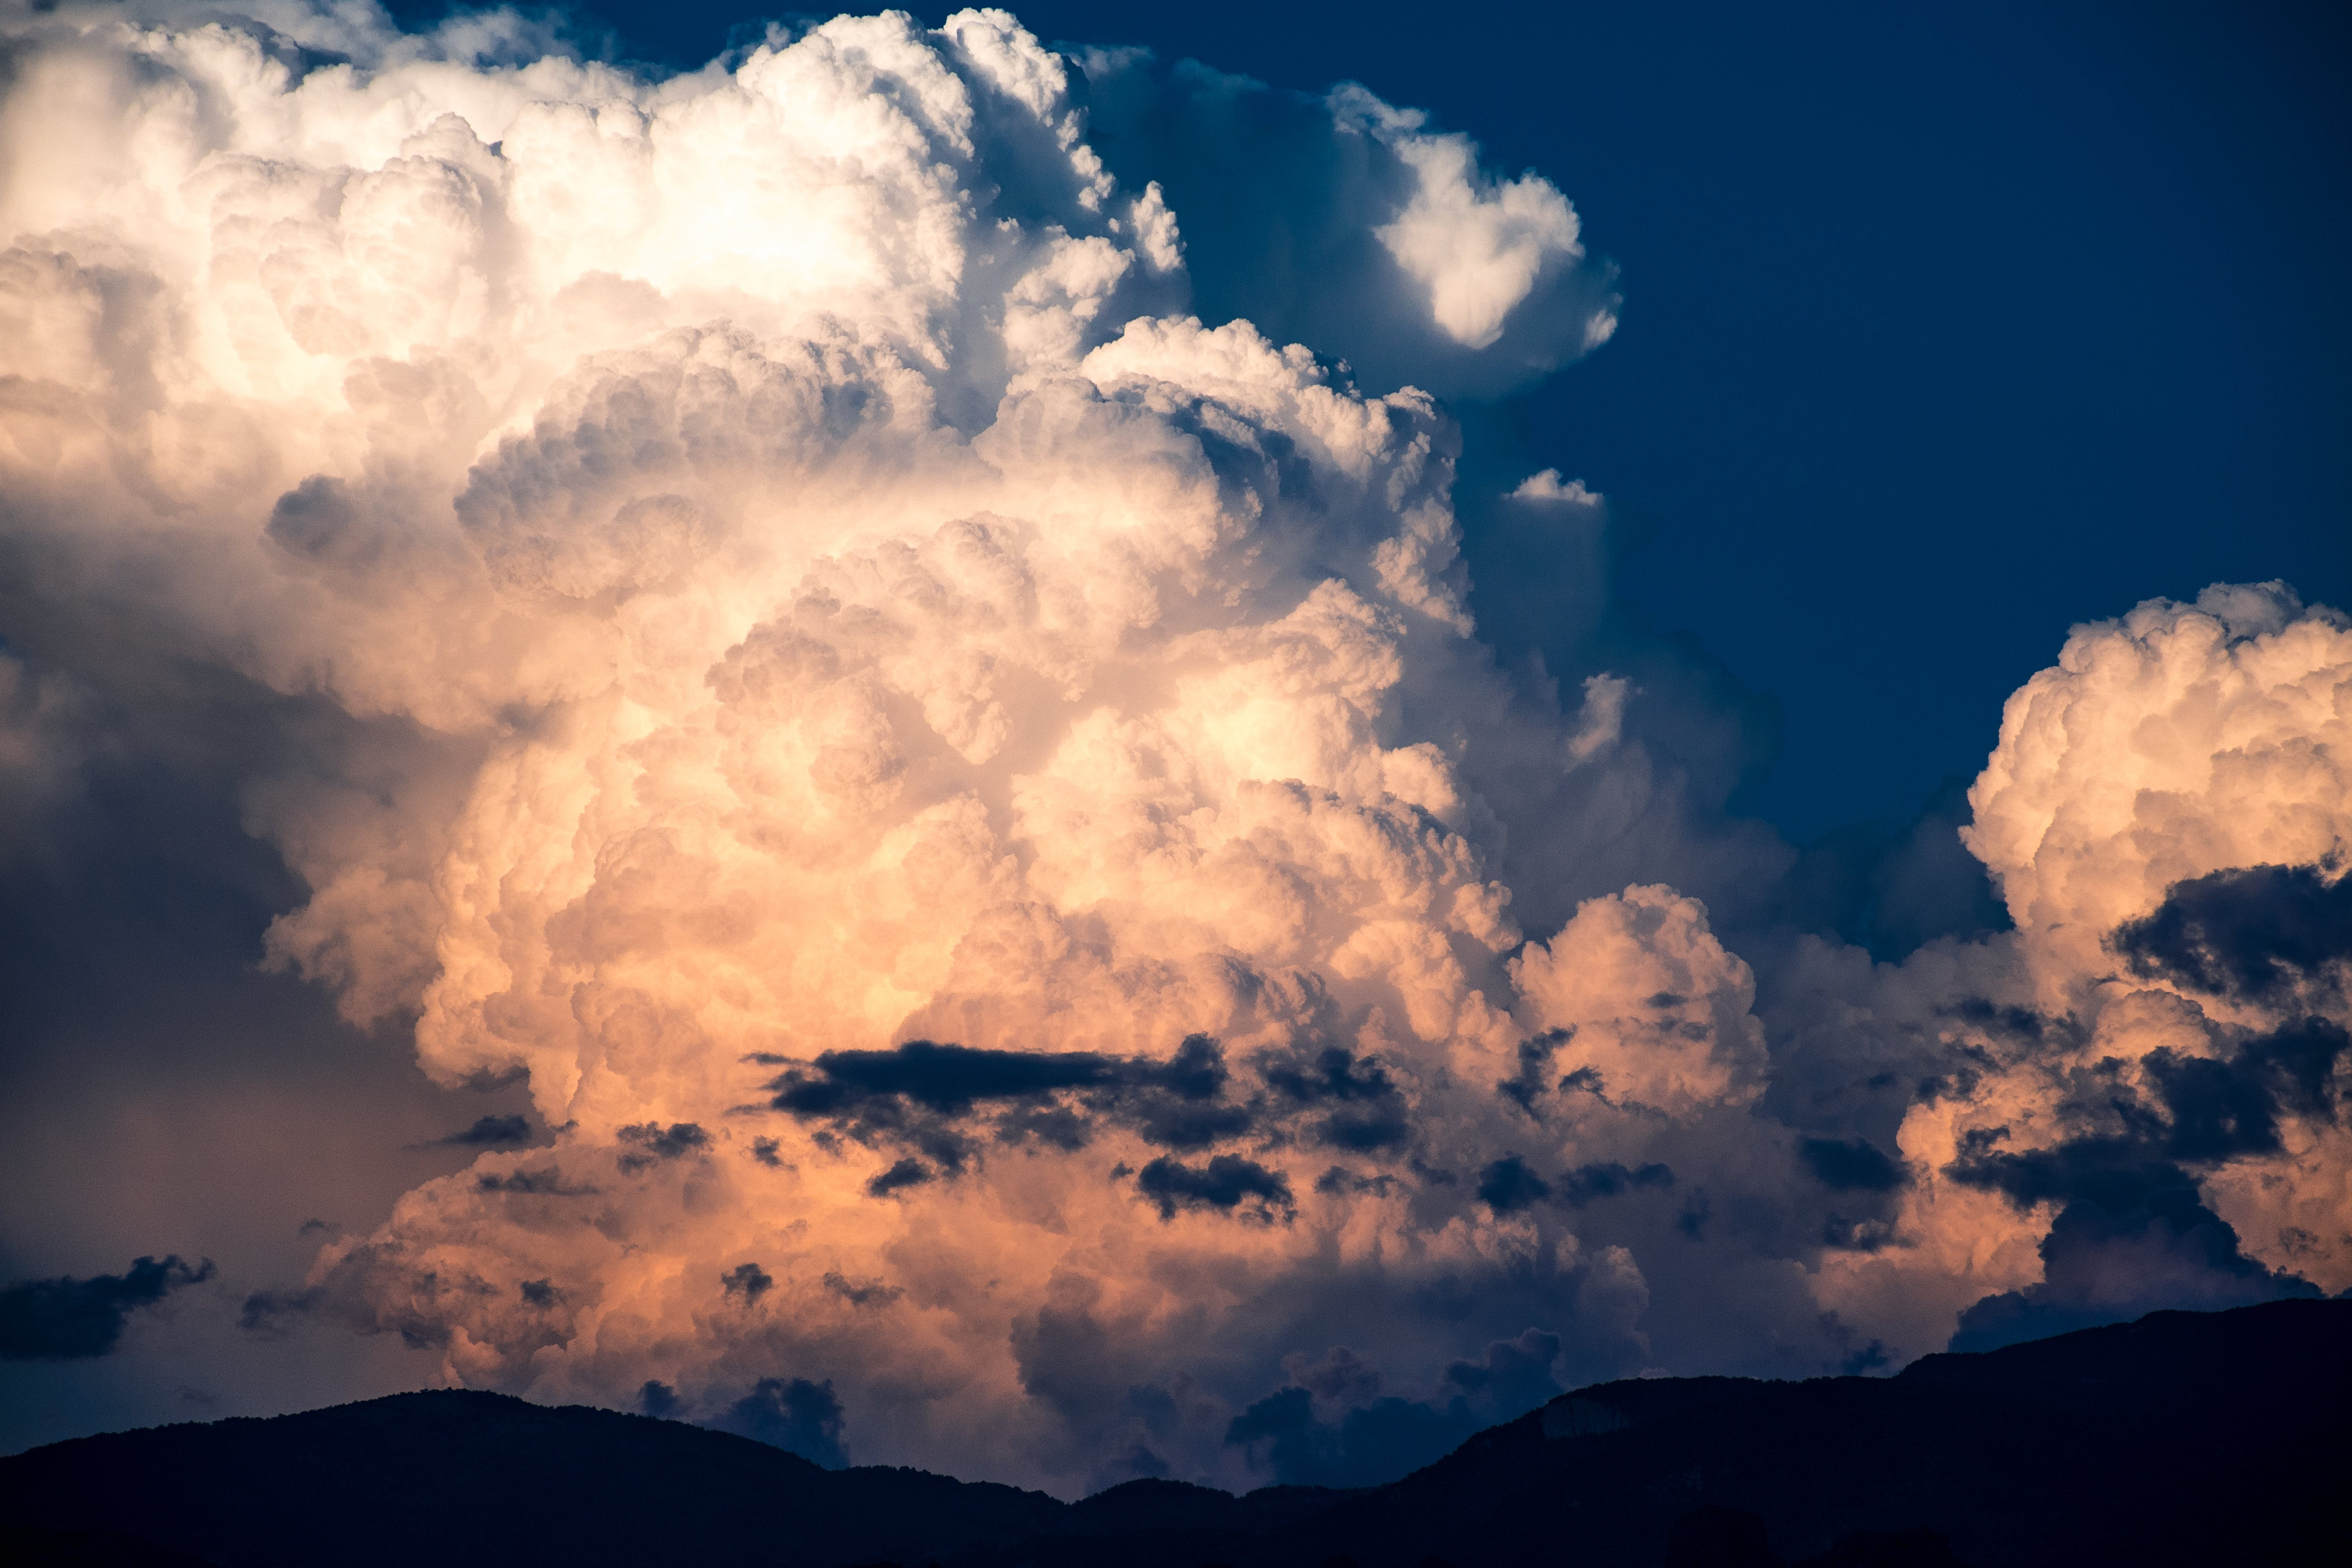 Panoramic Photography of Clouds